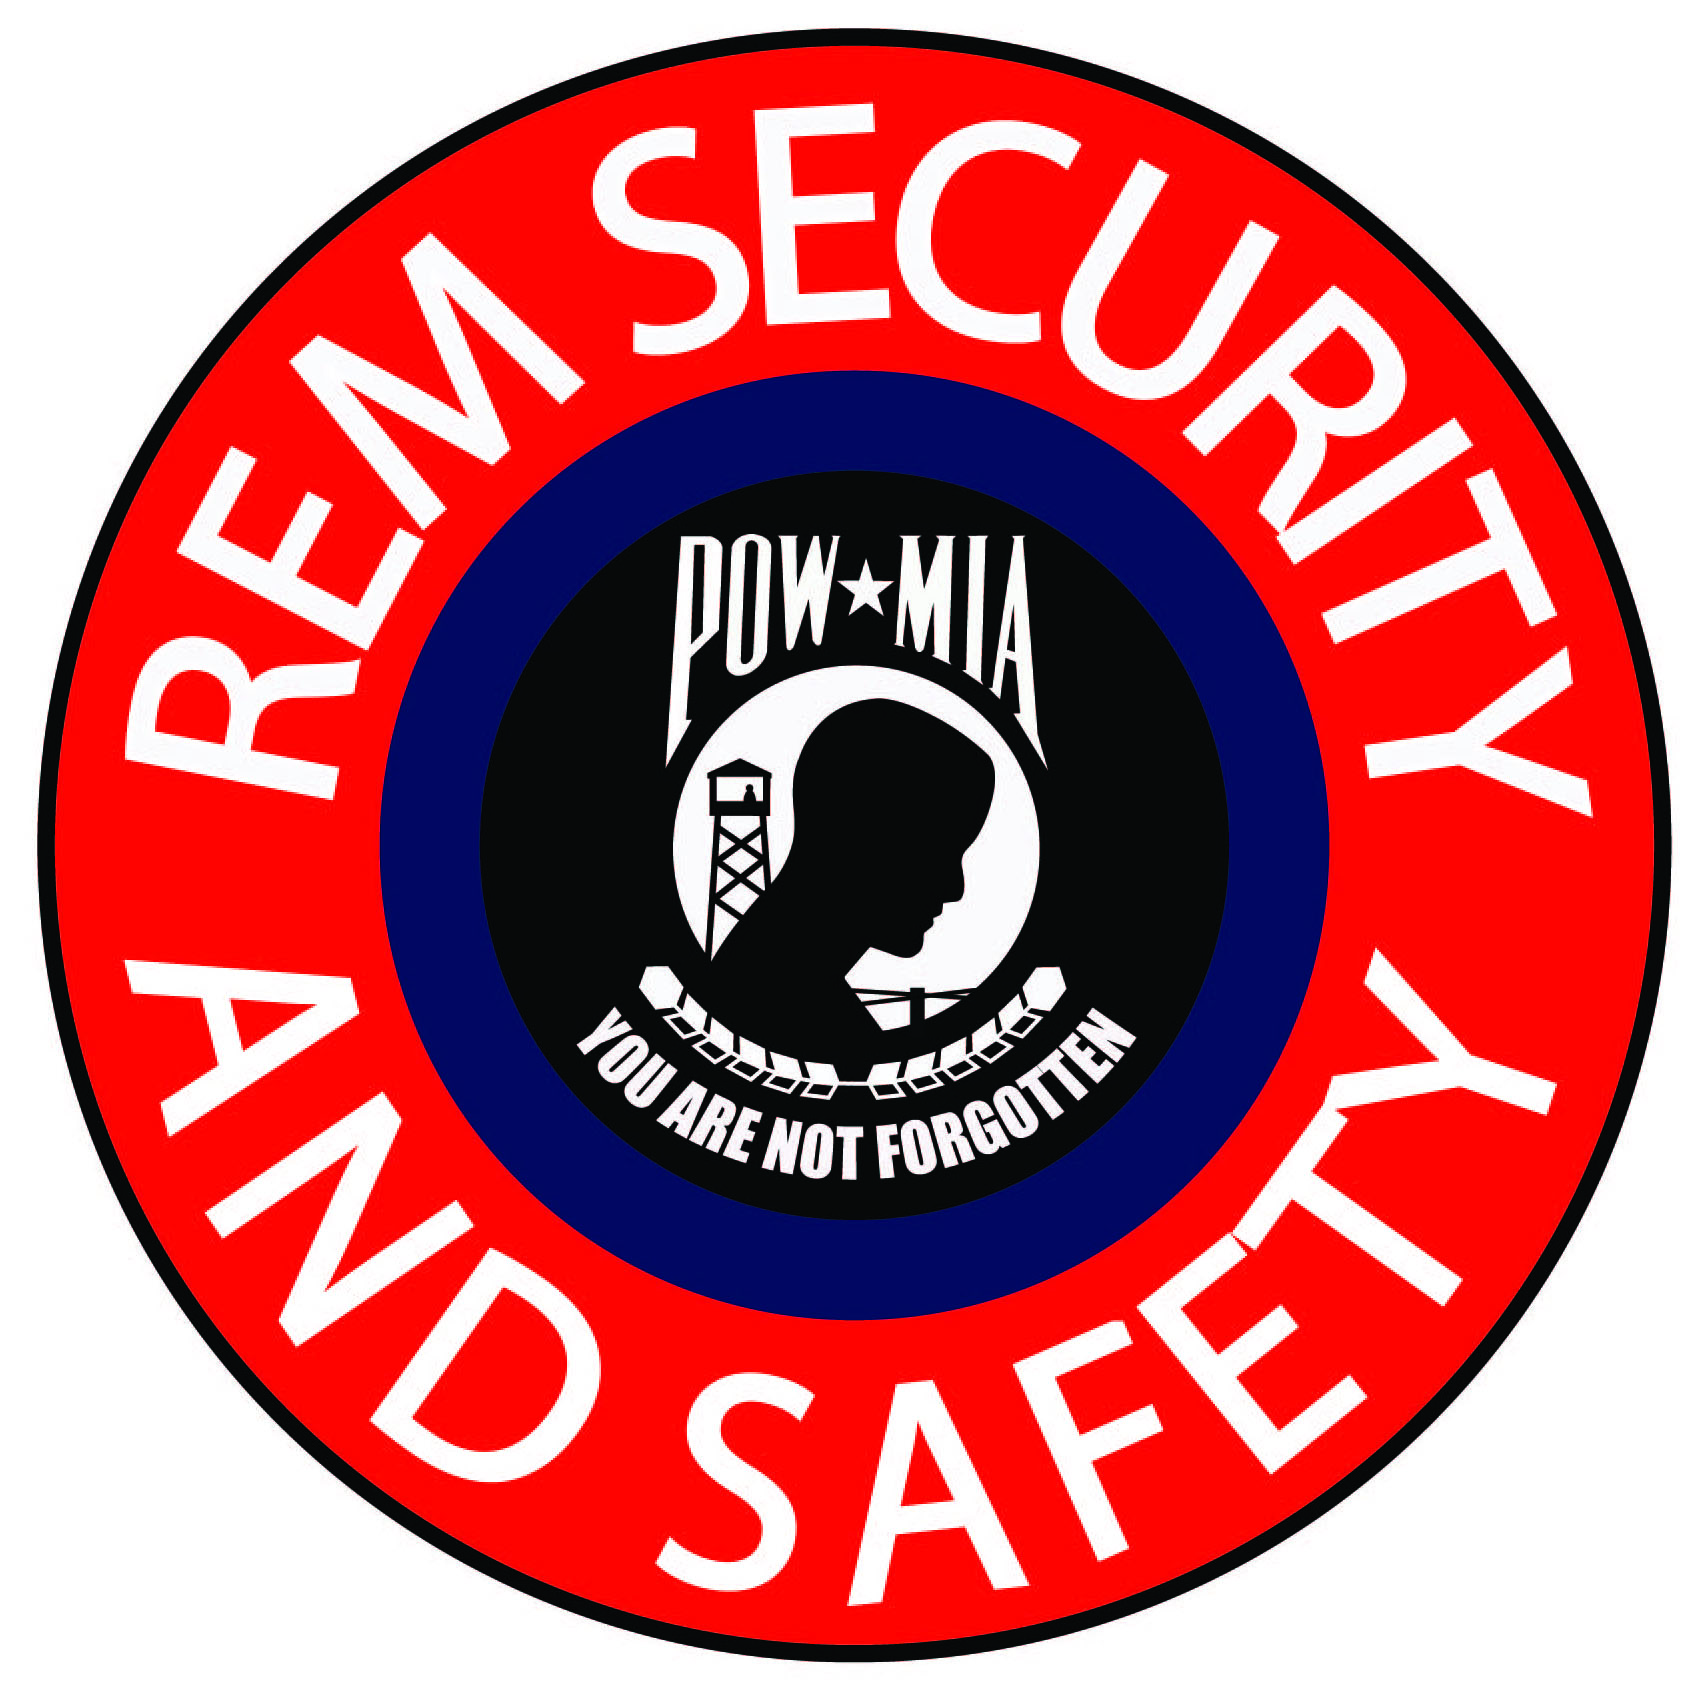 REM Security & Safety